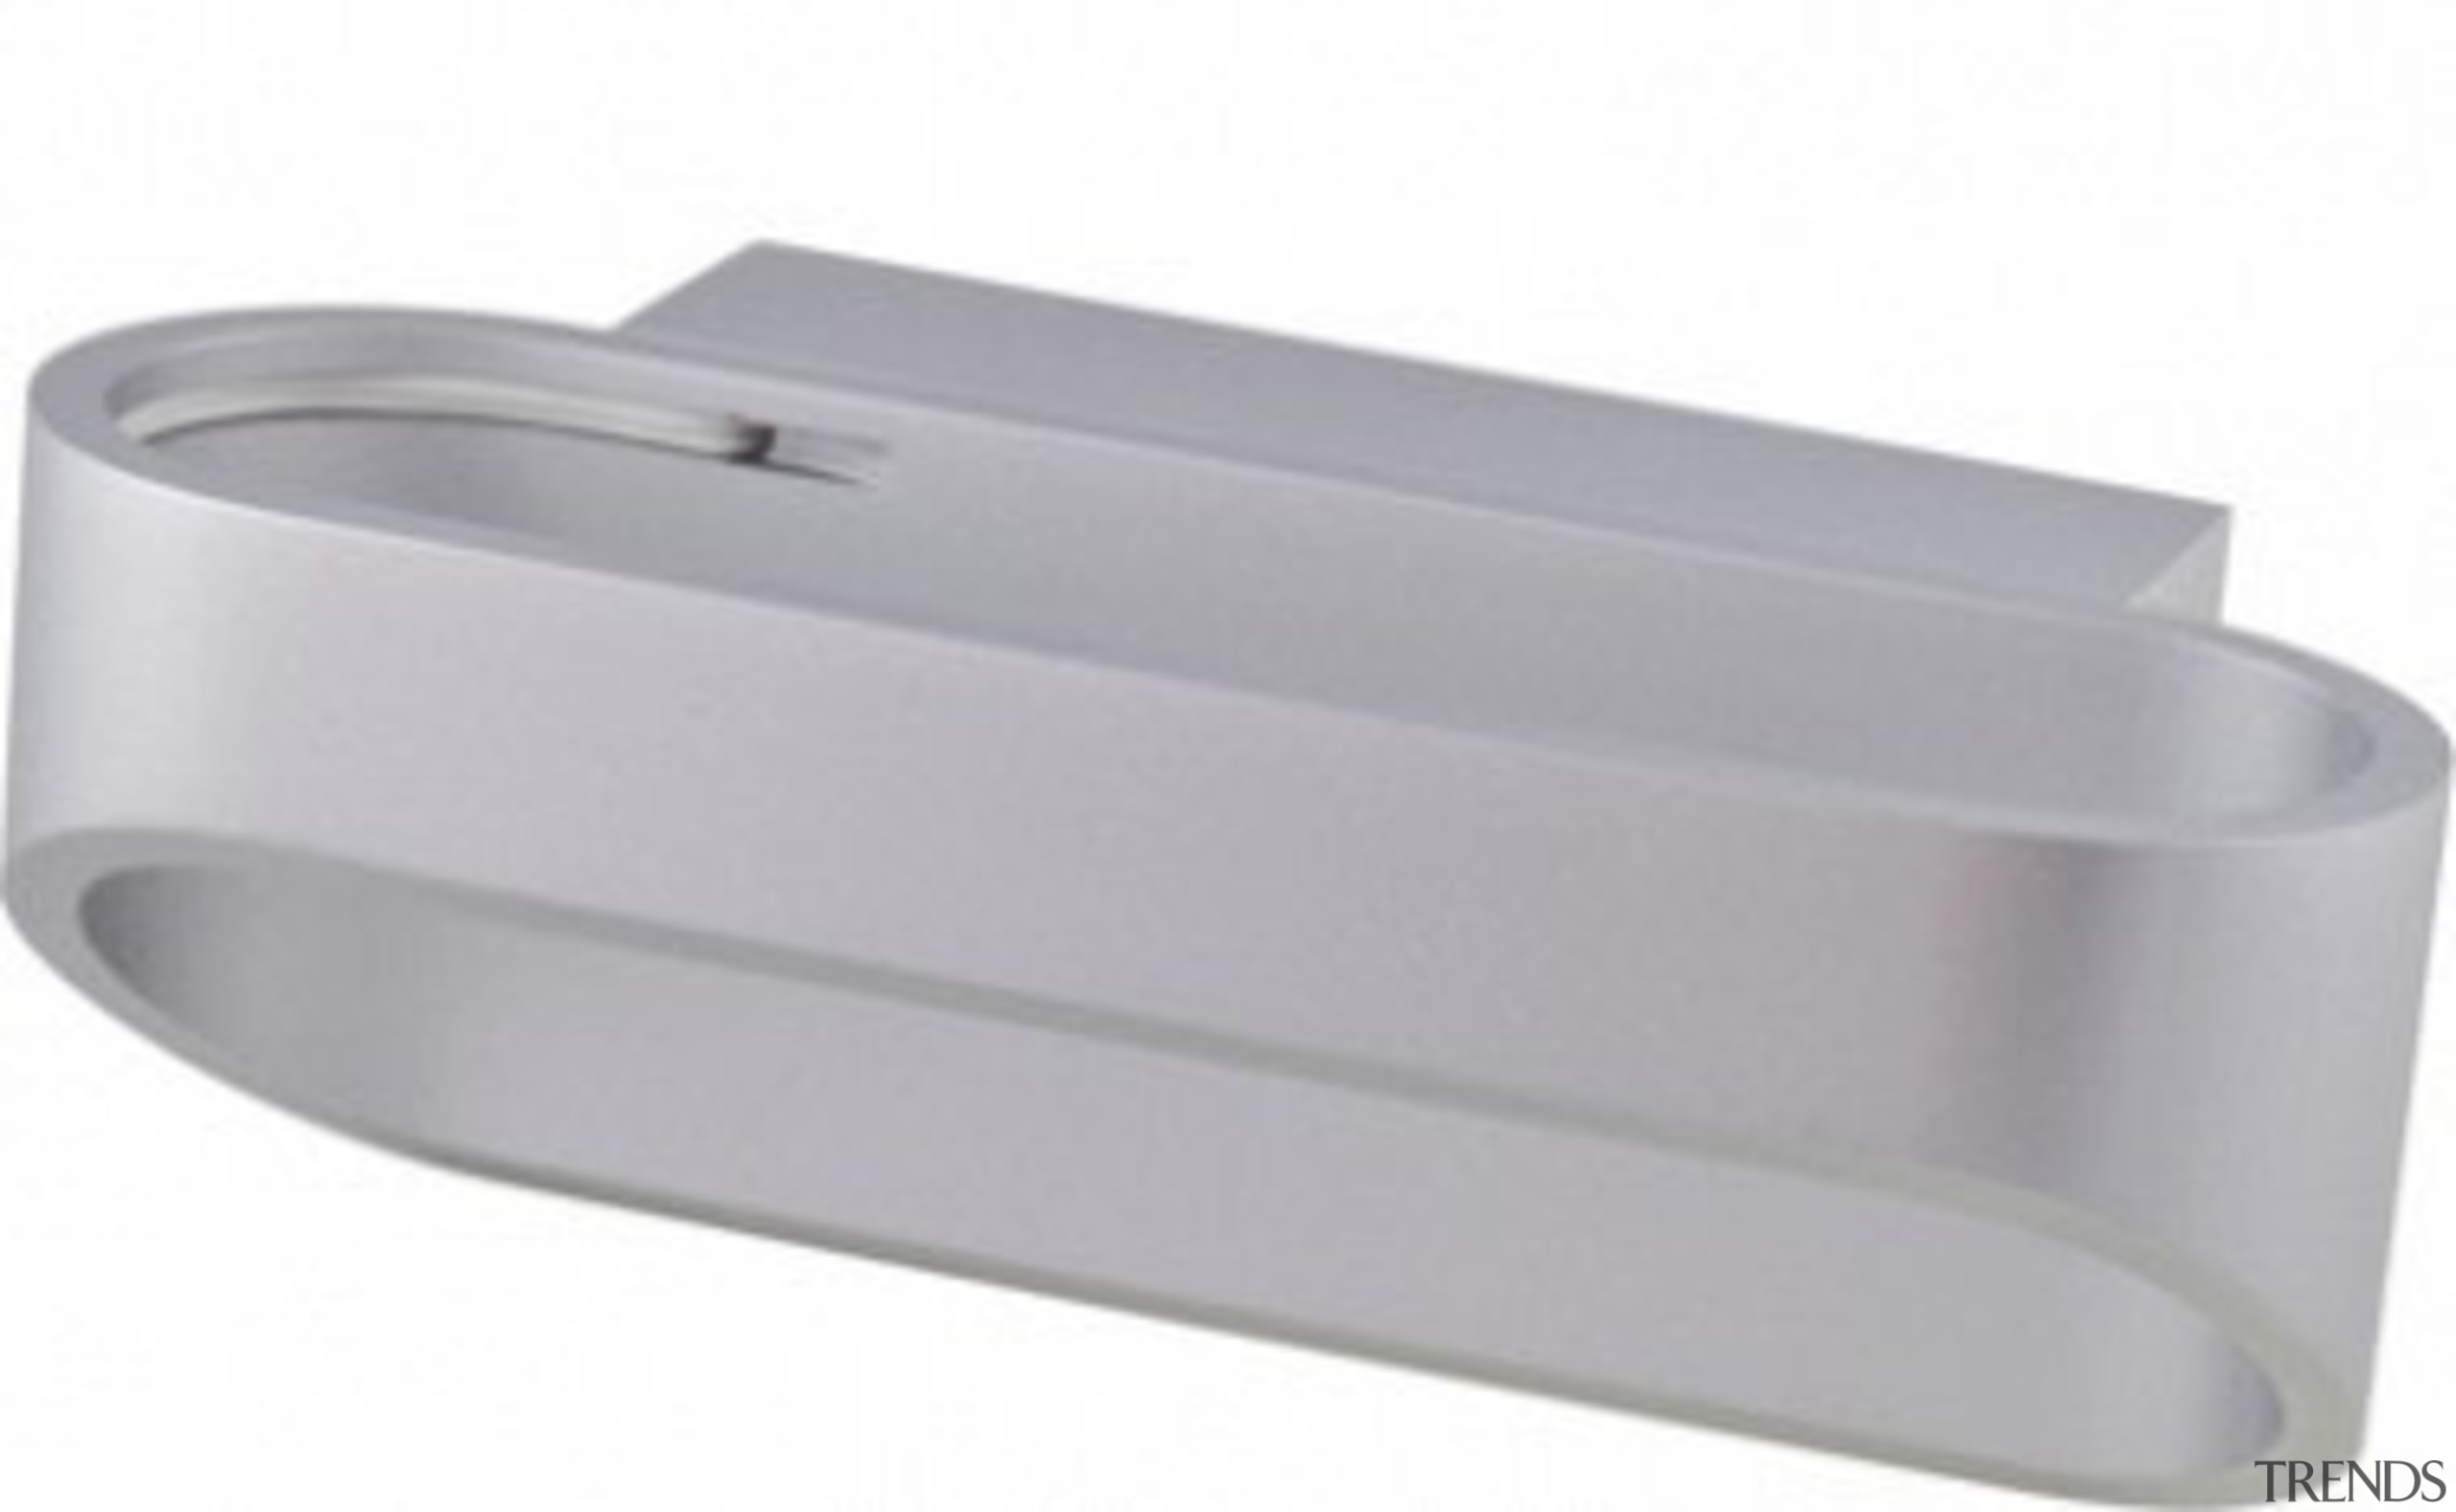 FeaturesAn innovative contemporary interior wall light design that product design, gray, white